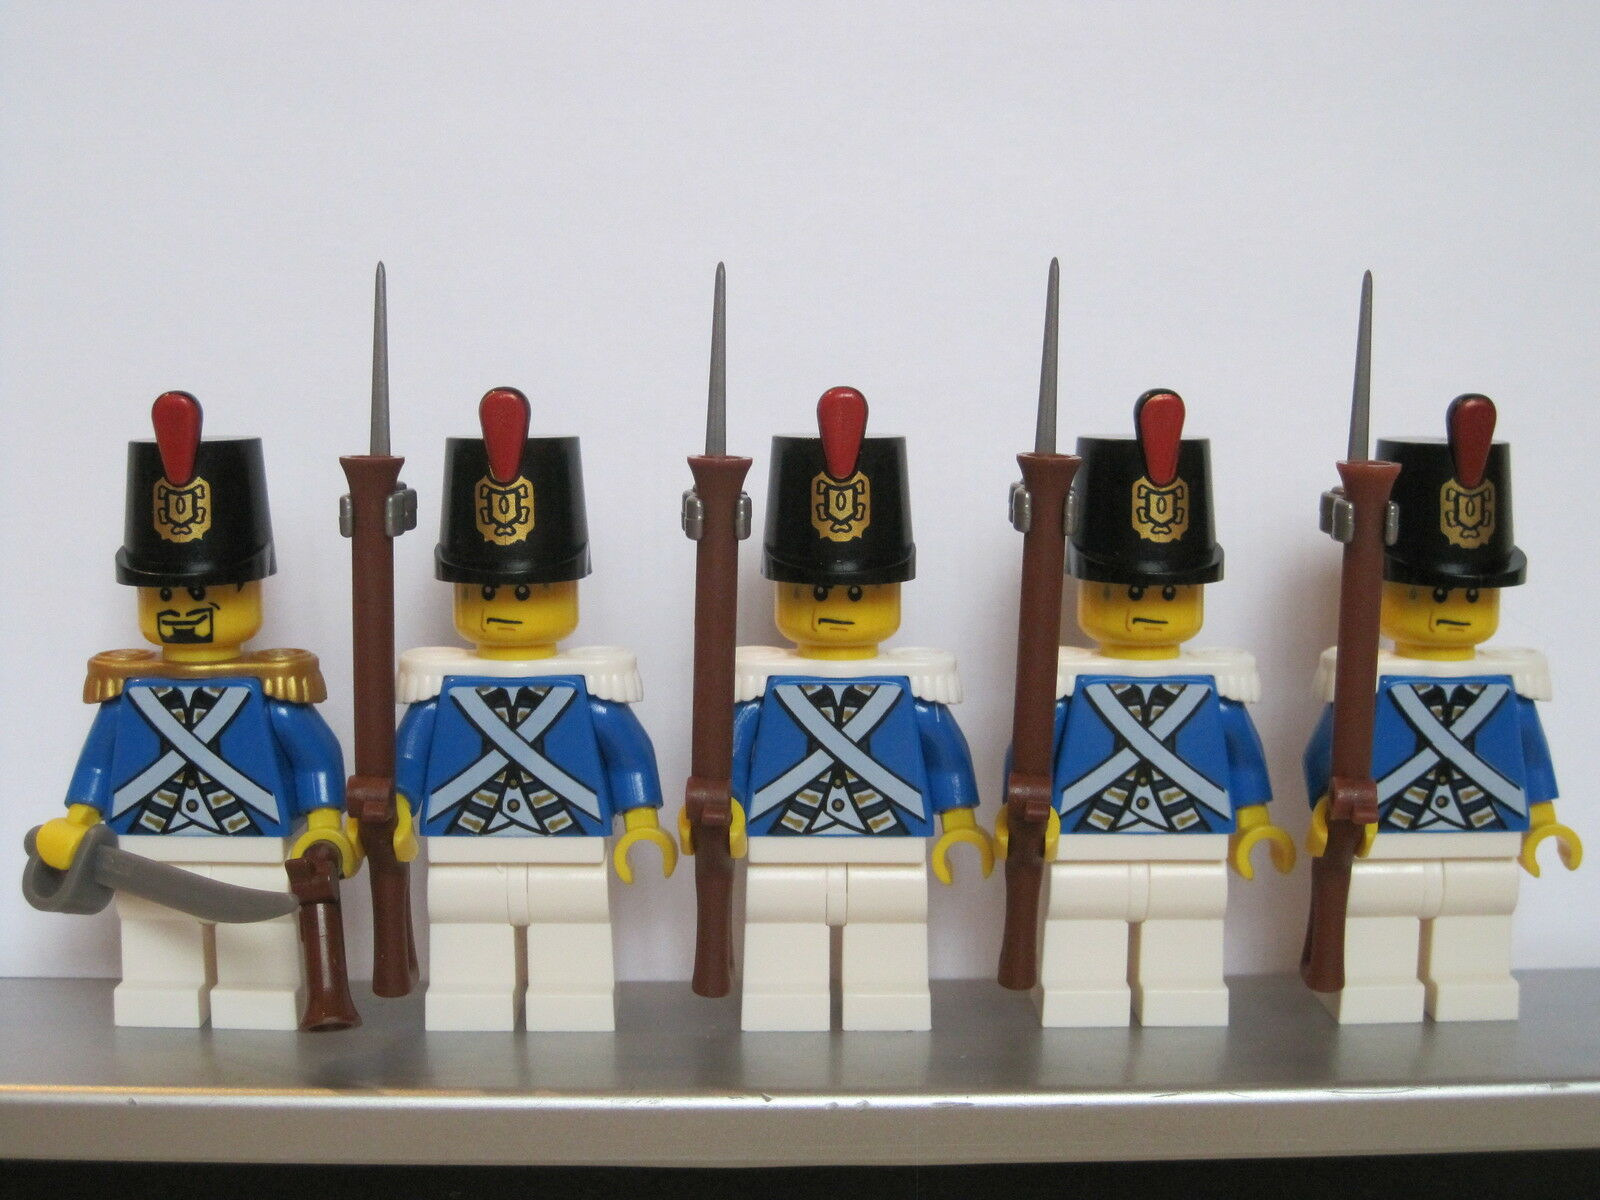 Lego PIRATE Imperial Guard blueECOAT Soldiers Soldiers Soldiers MINIFIGS Musket + Bayonet NEW 3b9b5d